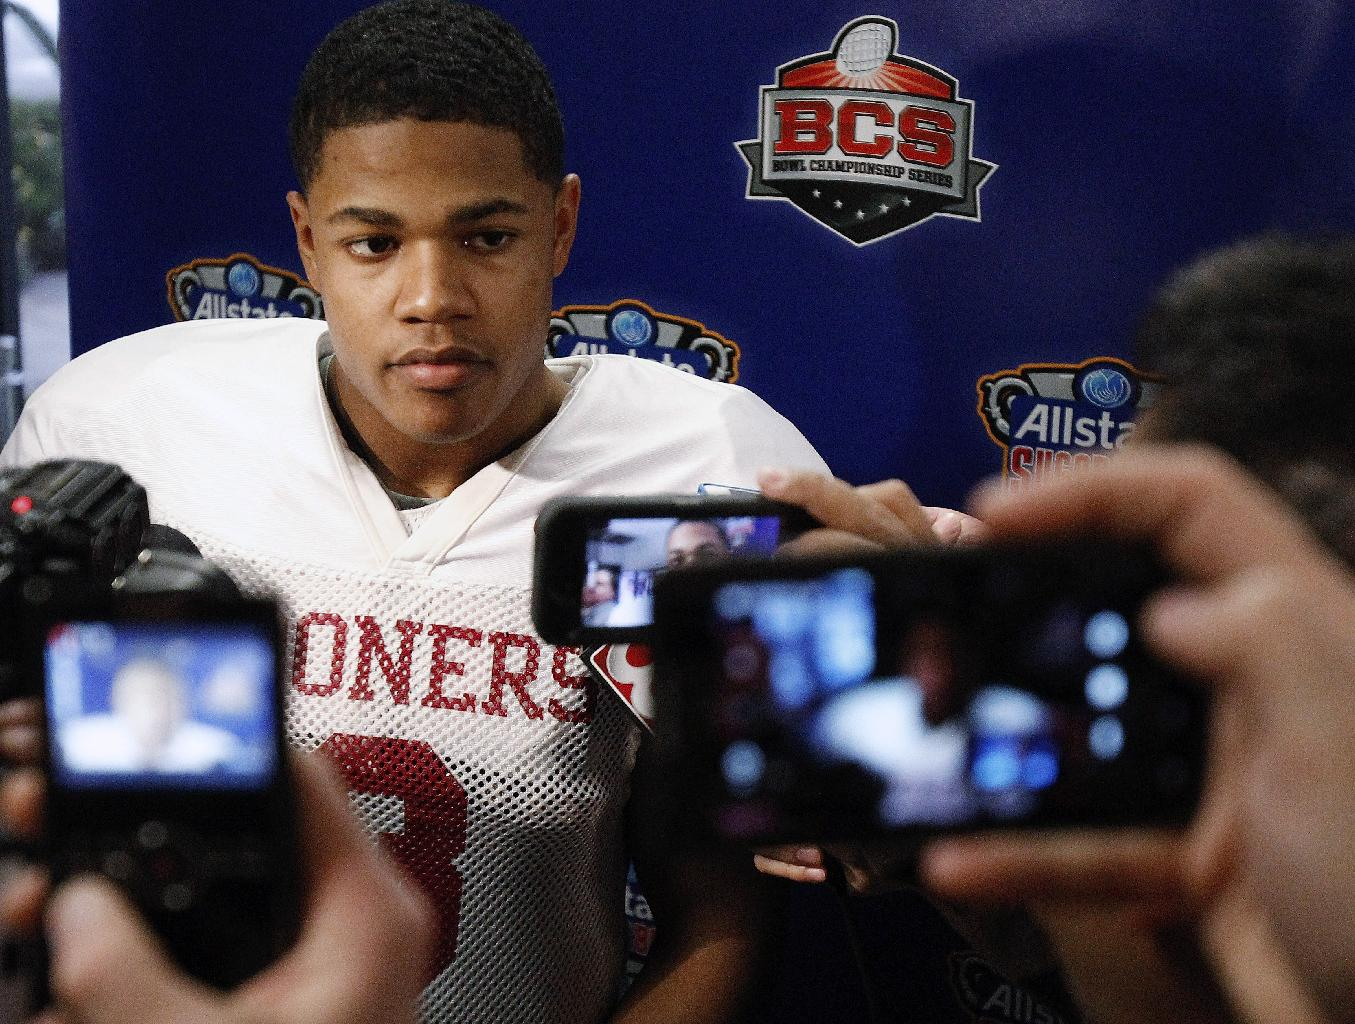 Oklahoma wide receiver Sterling Shepard (3) talks with the media at the conclusion of practice at the New Orleans Saints' practice facility in Metairie, La., Saturday, Dec. 28, 2013. Oklahoma will play Alabama in the Sugar Bowl NCAA college football game on Jan. 2